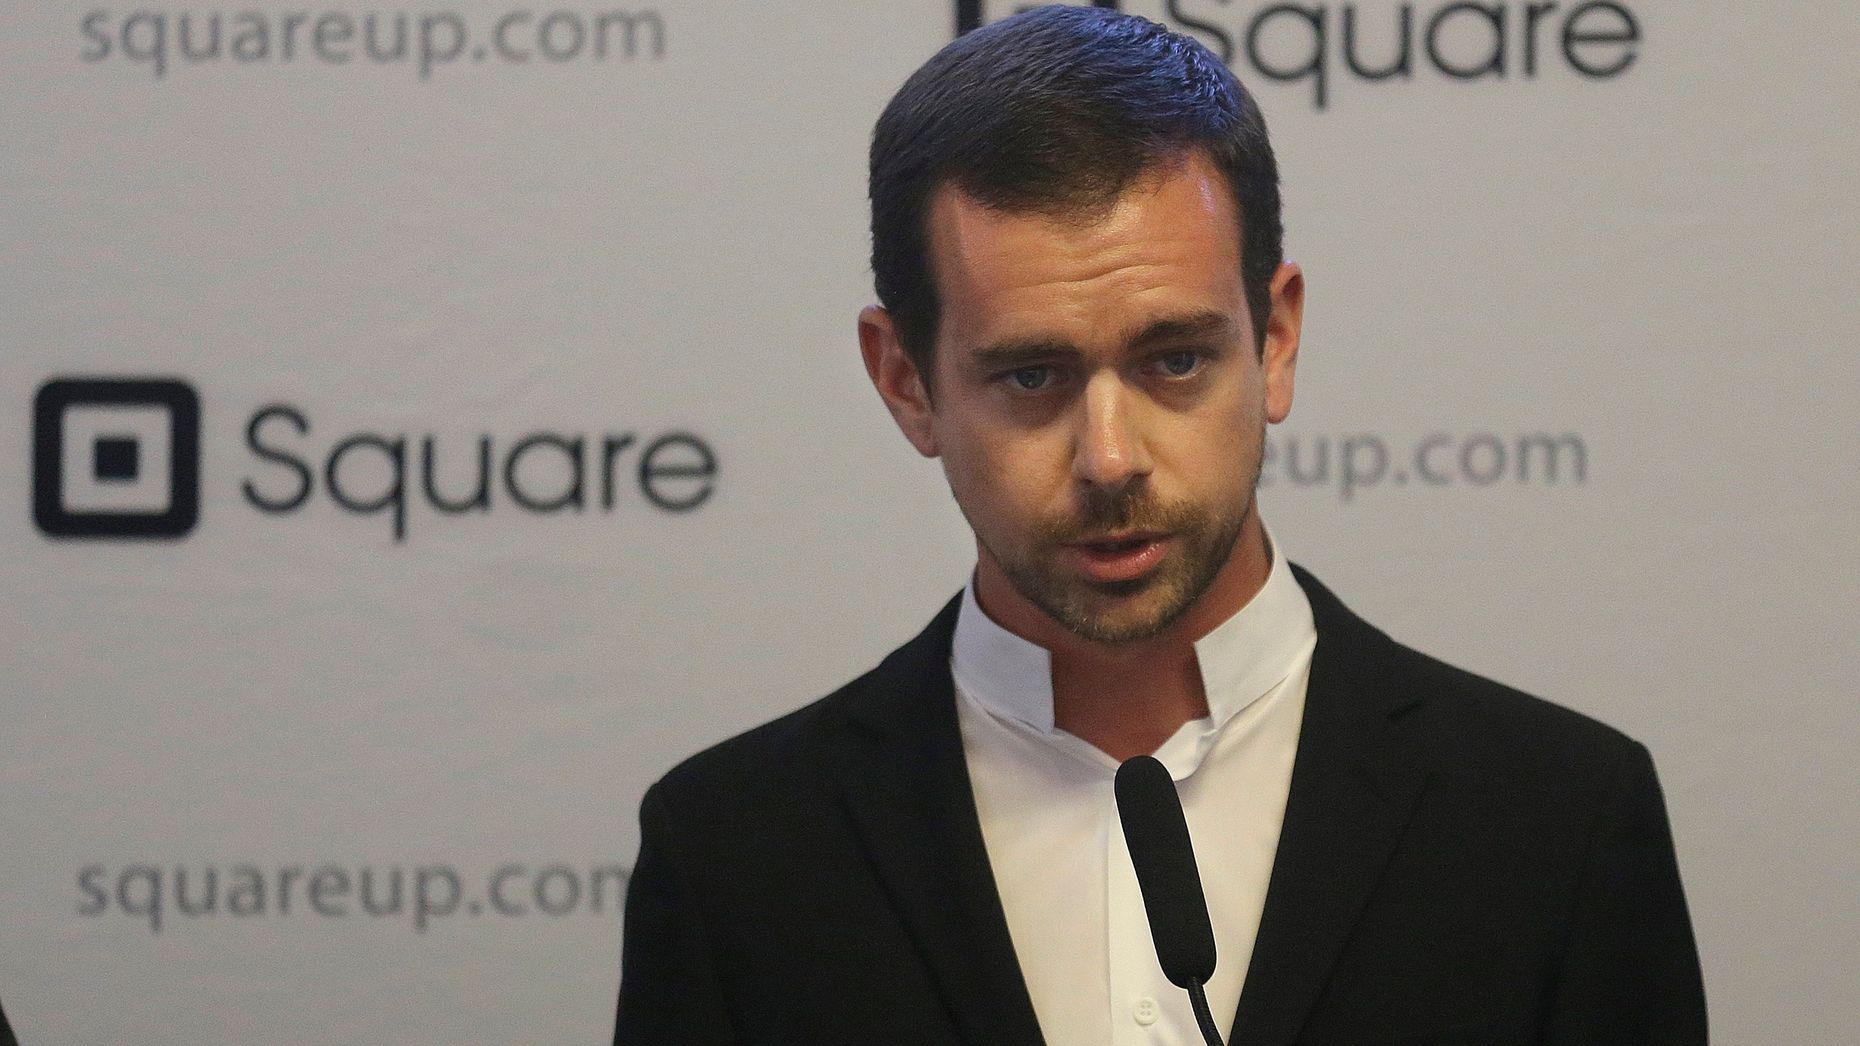 Square CEO Jack Dorsey. Photo by AP.